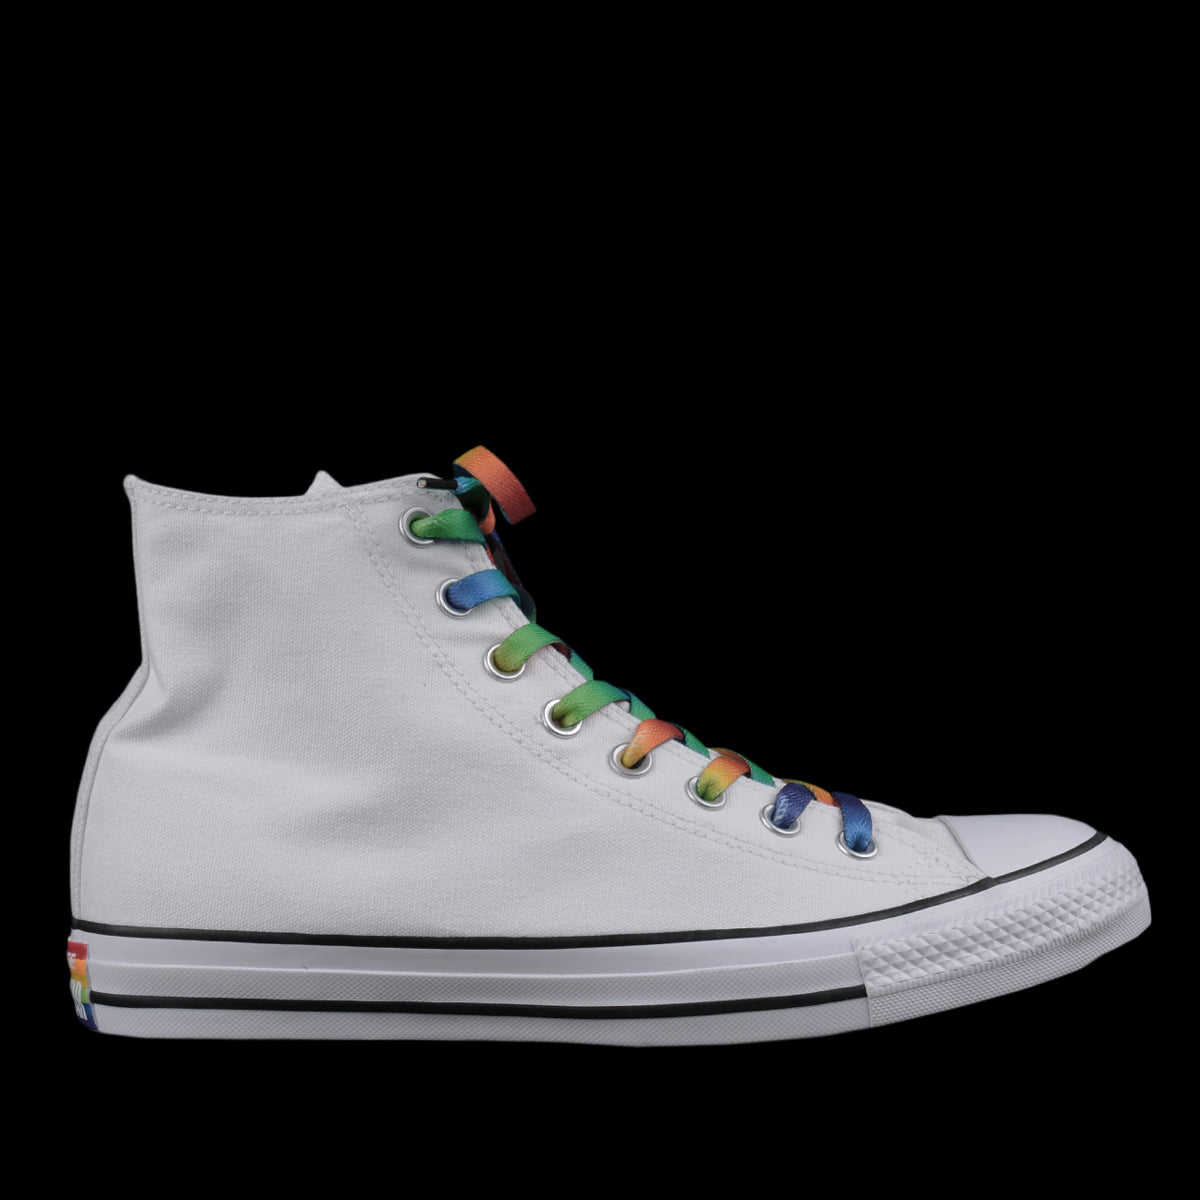 Converse - Chuck Taylor All Star Hi Pride in White and Rainbow ... 2b17d5abd